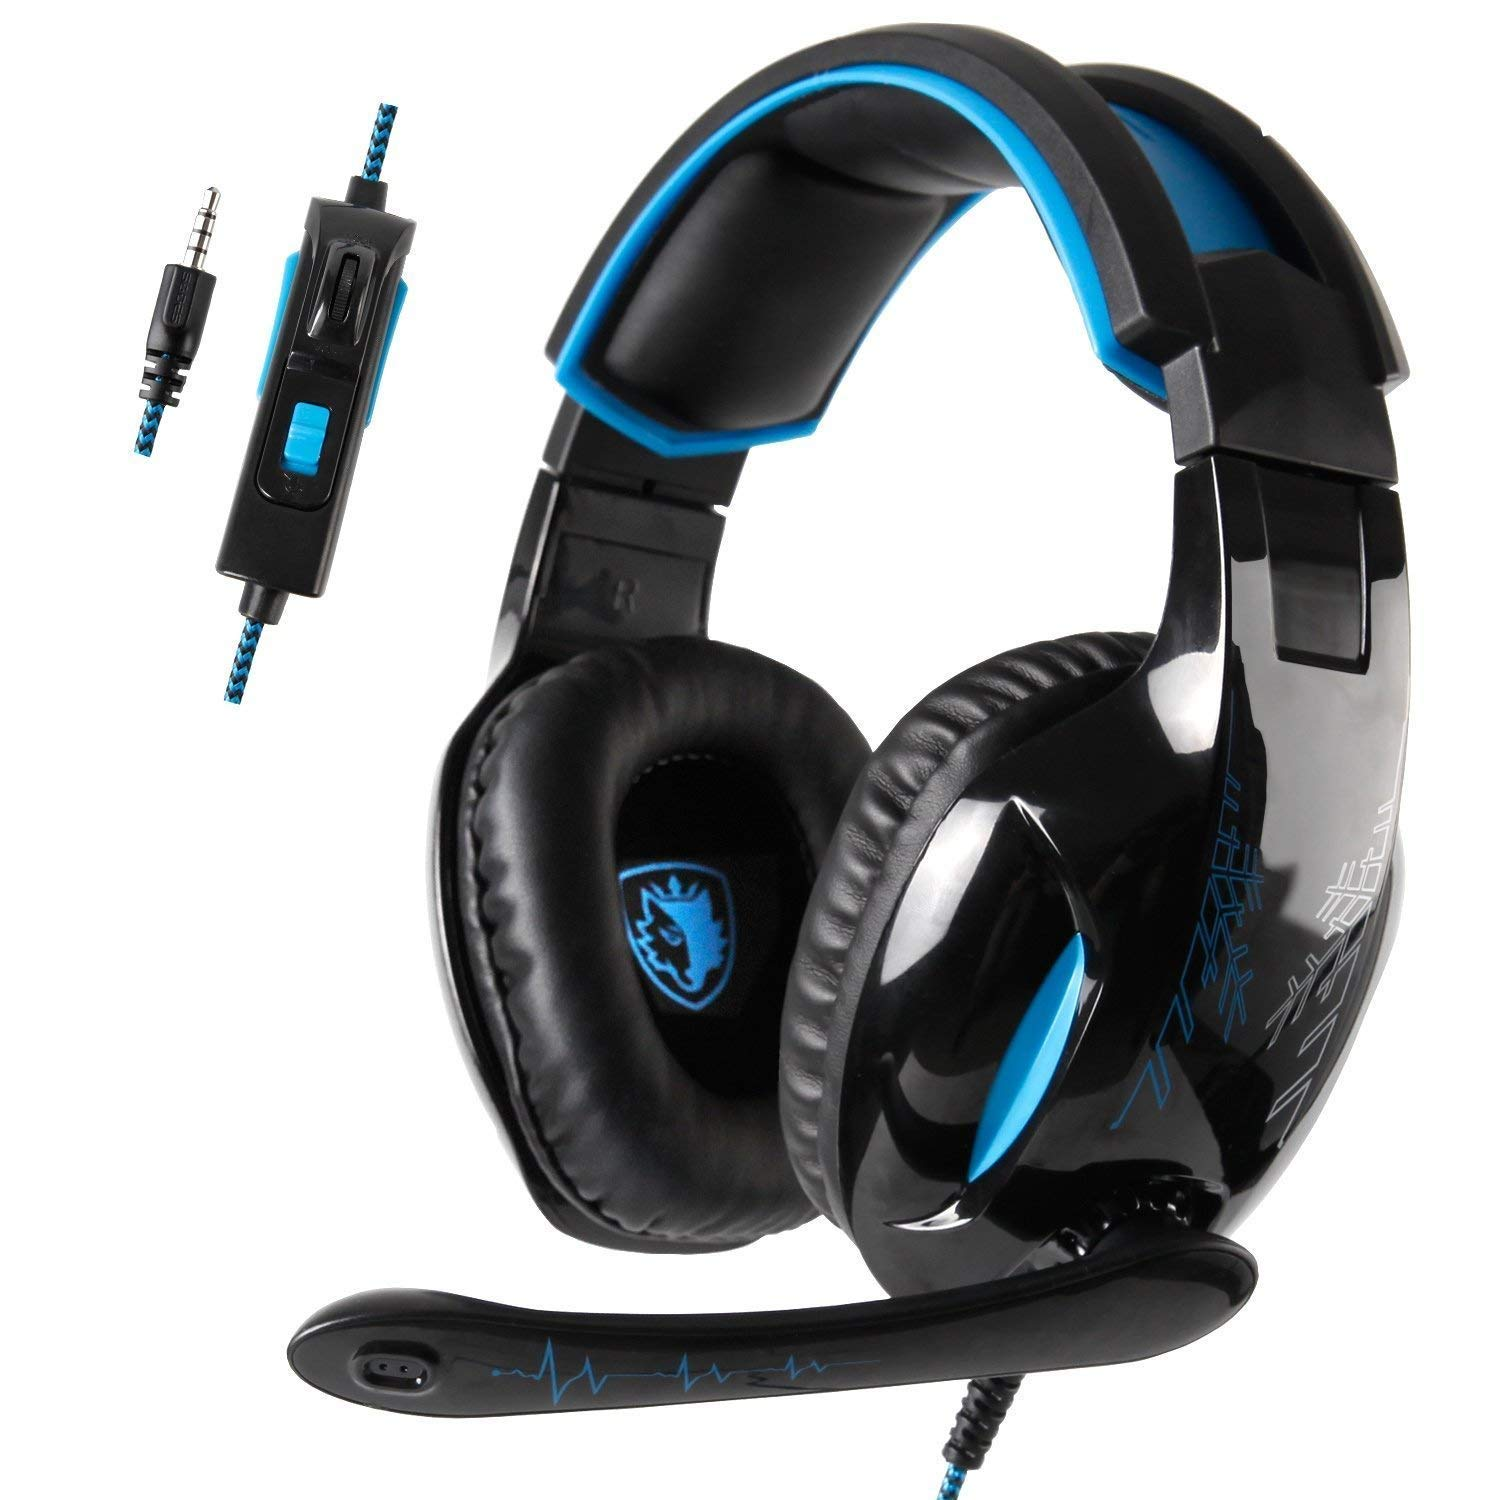 SADES Gaming Headset PS4 Headset with 7.1 Surround Sound with Noise Canceling Over Ear Headphones Compatible for PS4, PC, Laptop